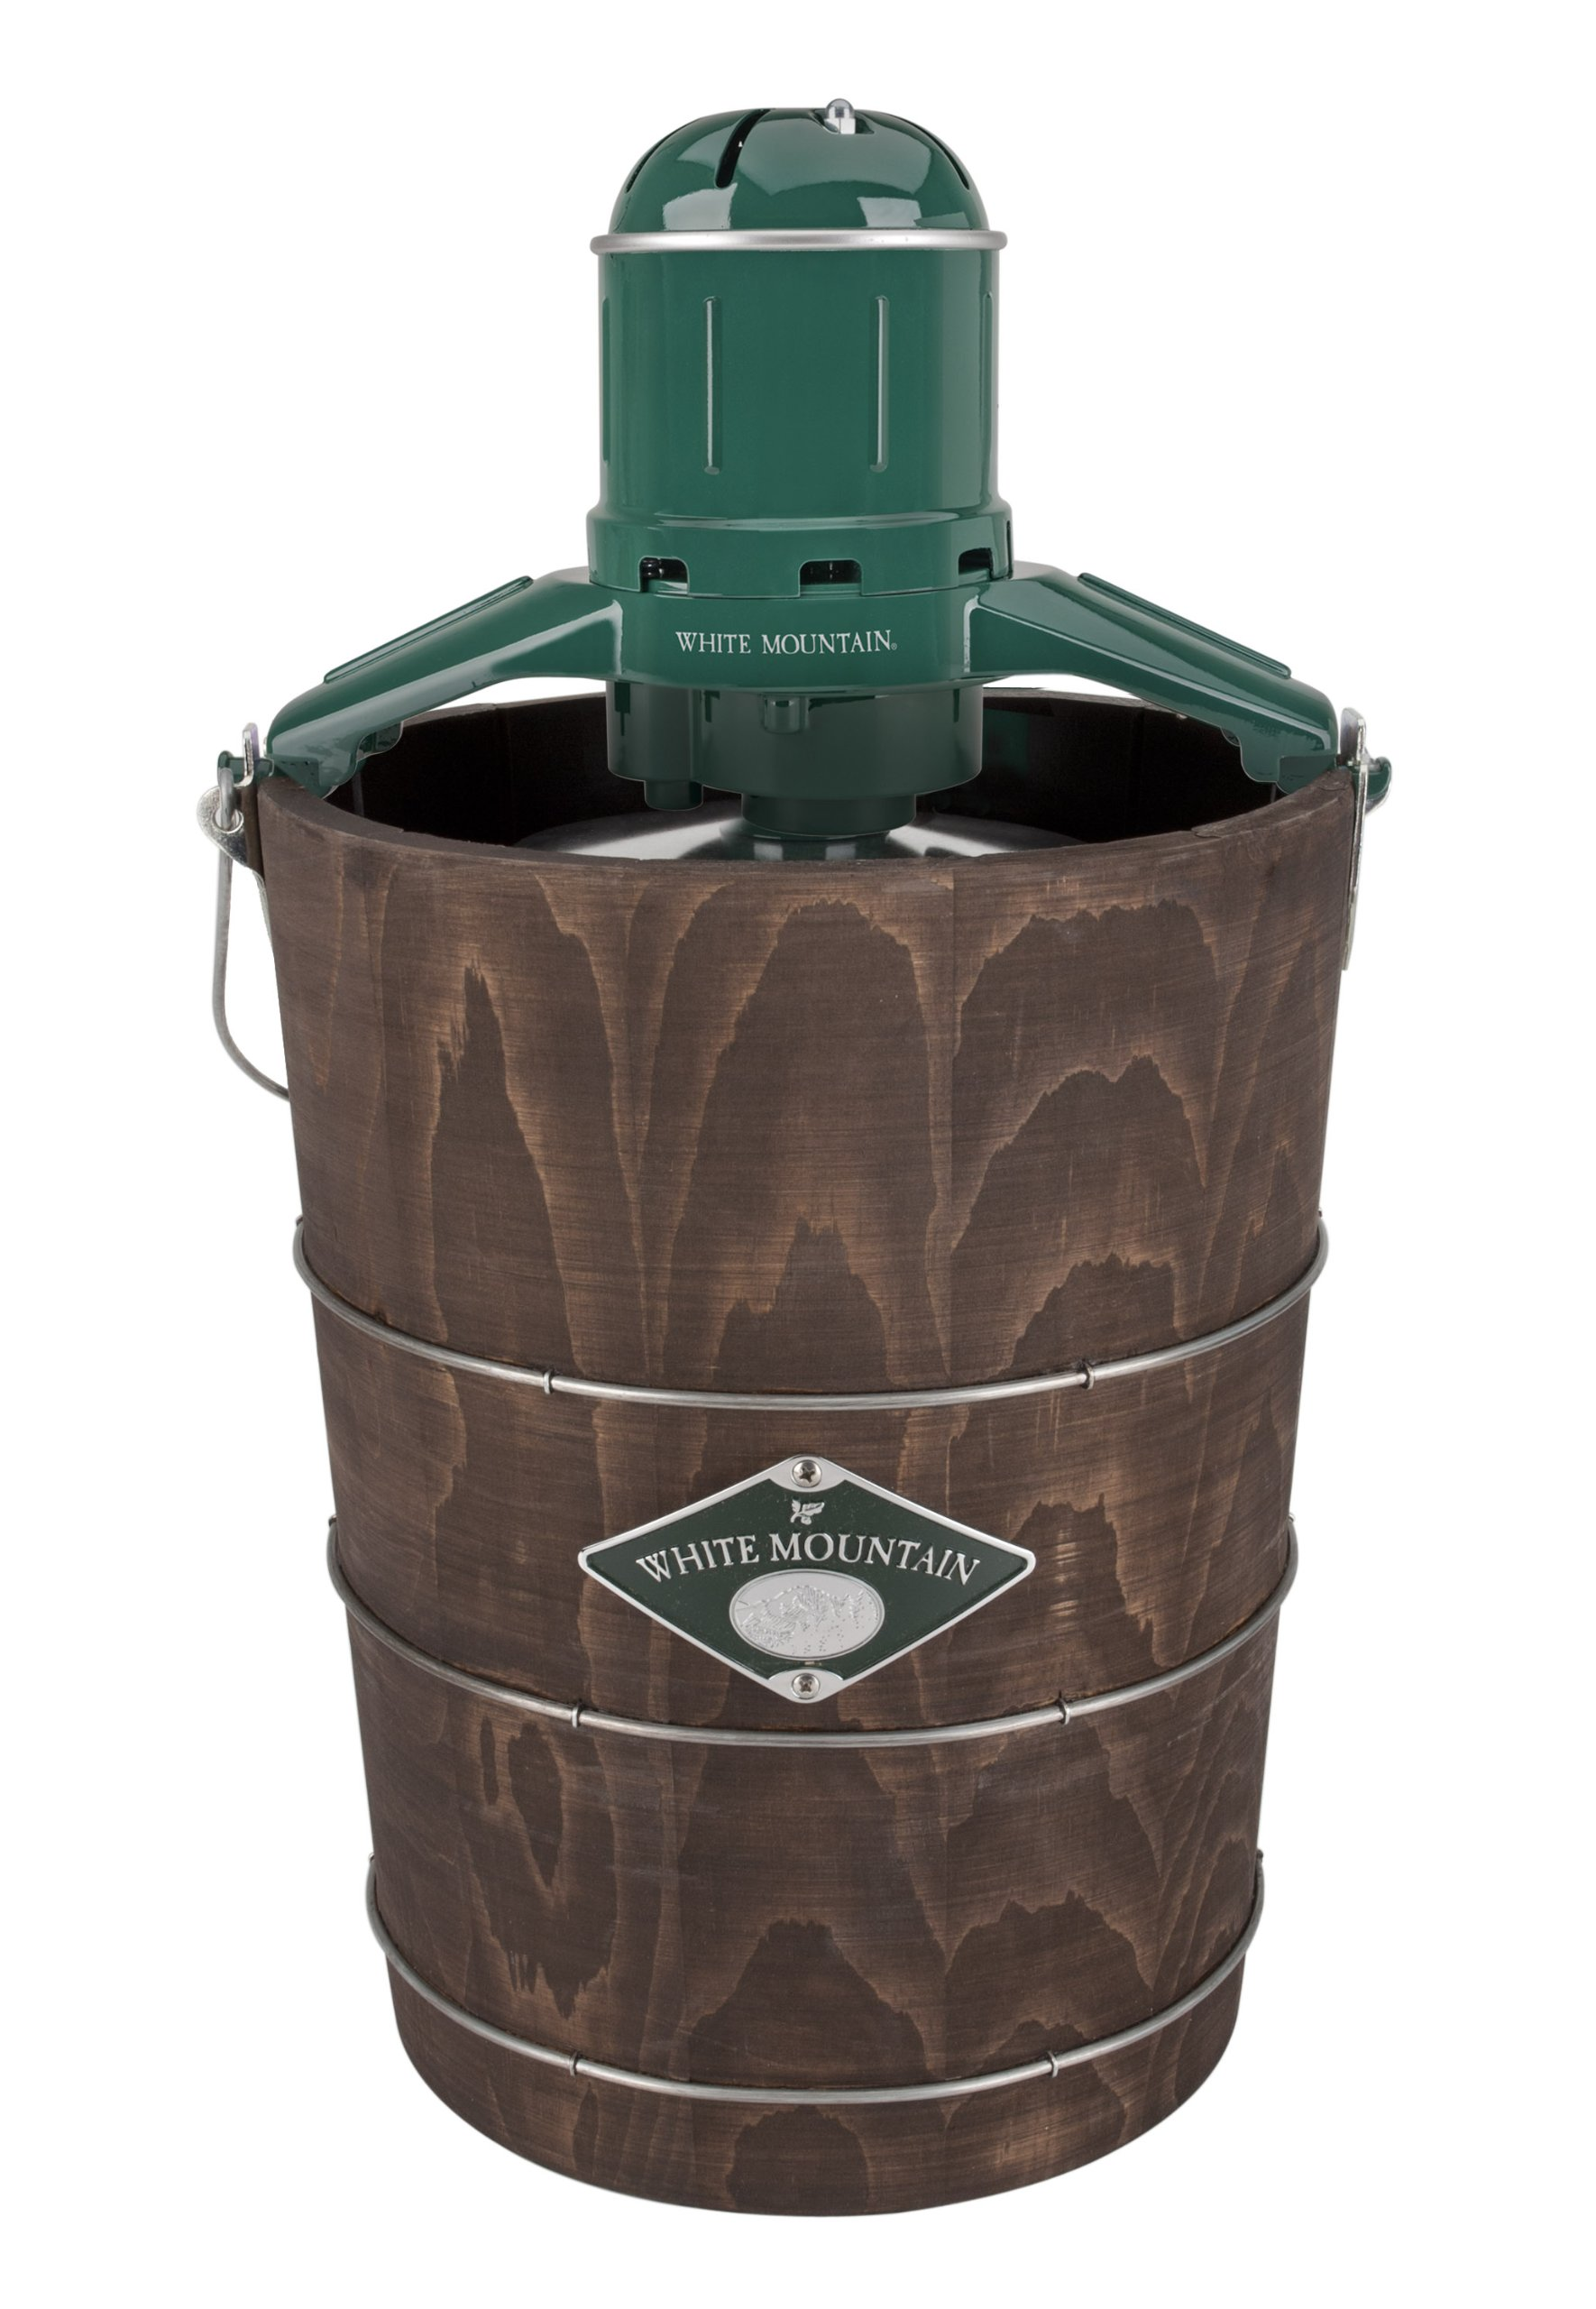 White Mountain Ice Cream Maker with Appalachian Series Wooden Bucket, 6-Quart Electric